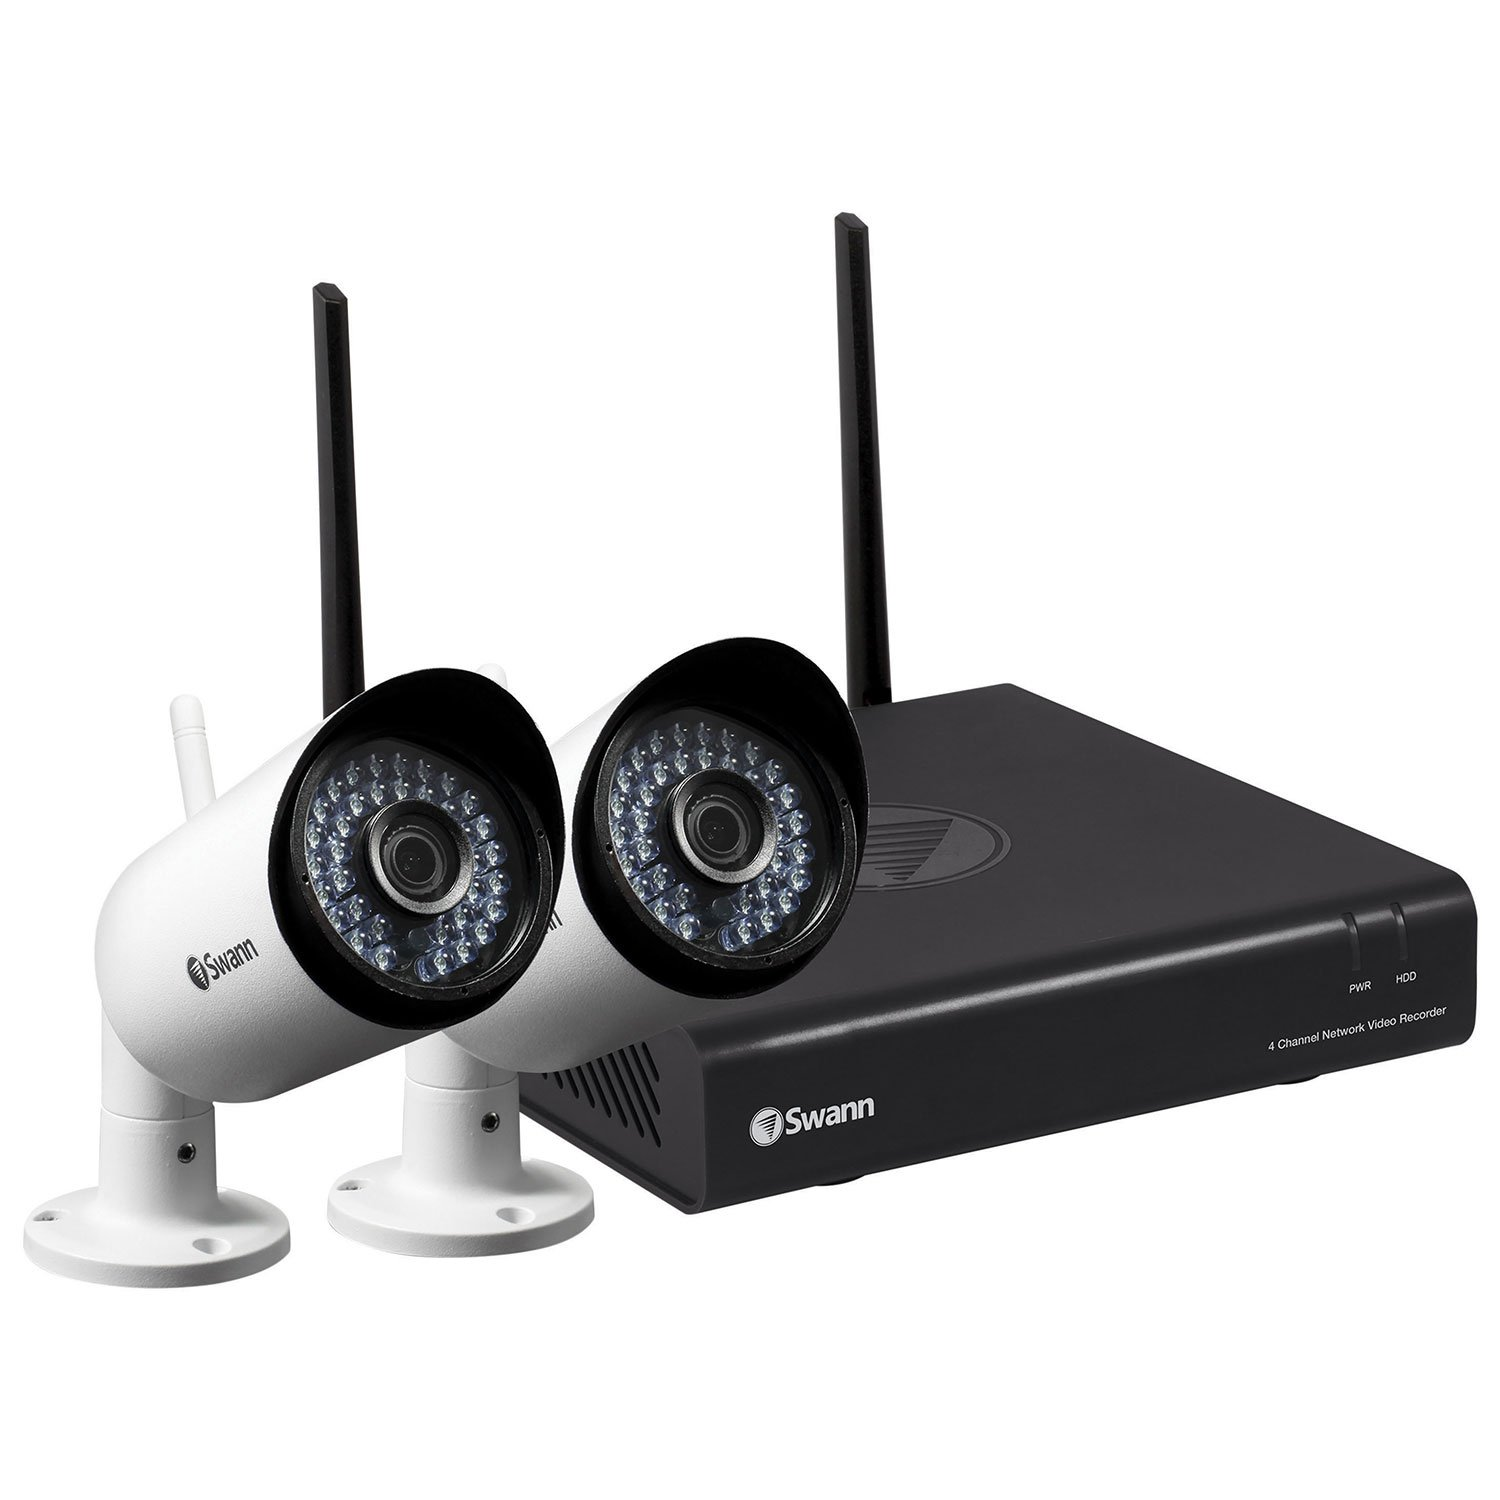 Swann SWNVW-485KH2-US 1080p WiFi Security Kit with 2 Cameras